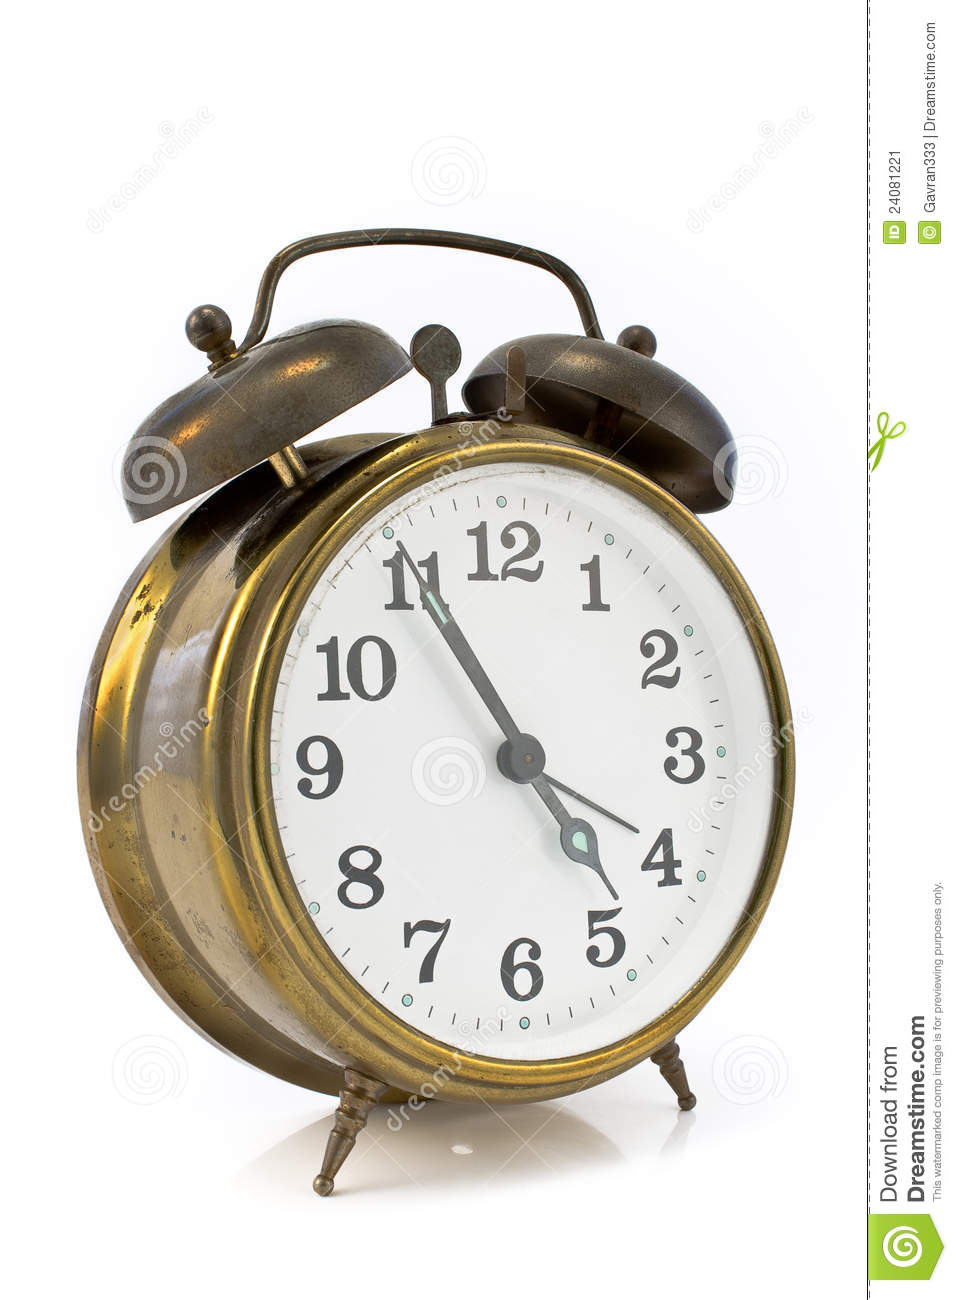 Old Alarm Clock Stock Image - Image: 24081221